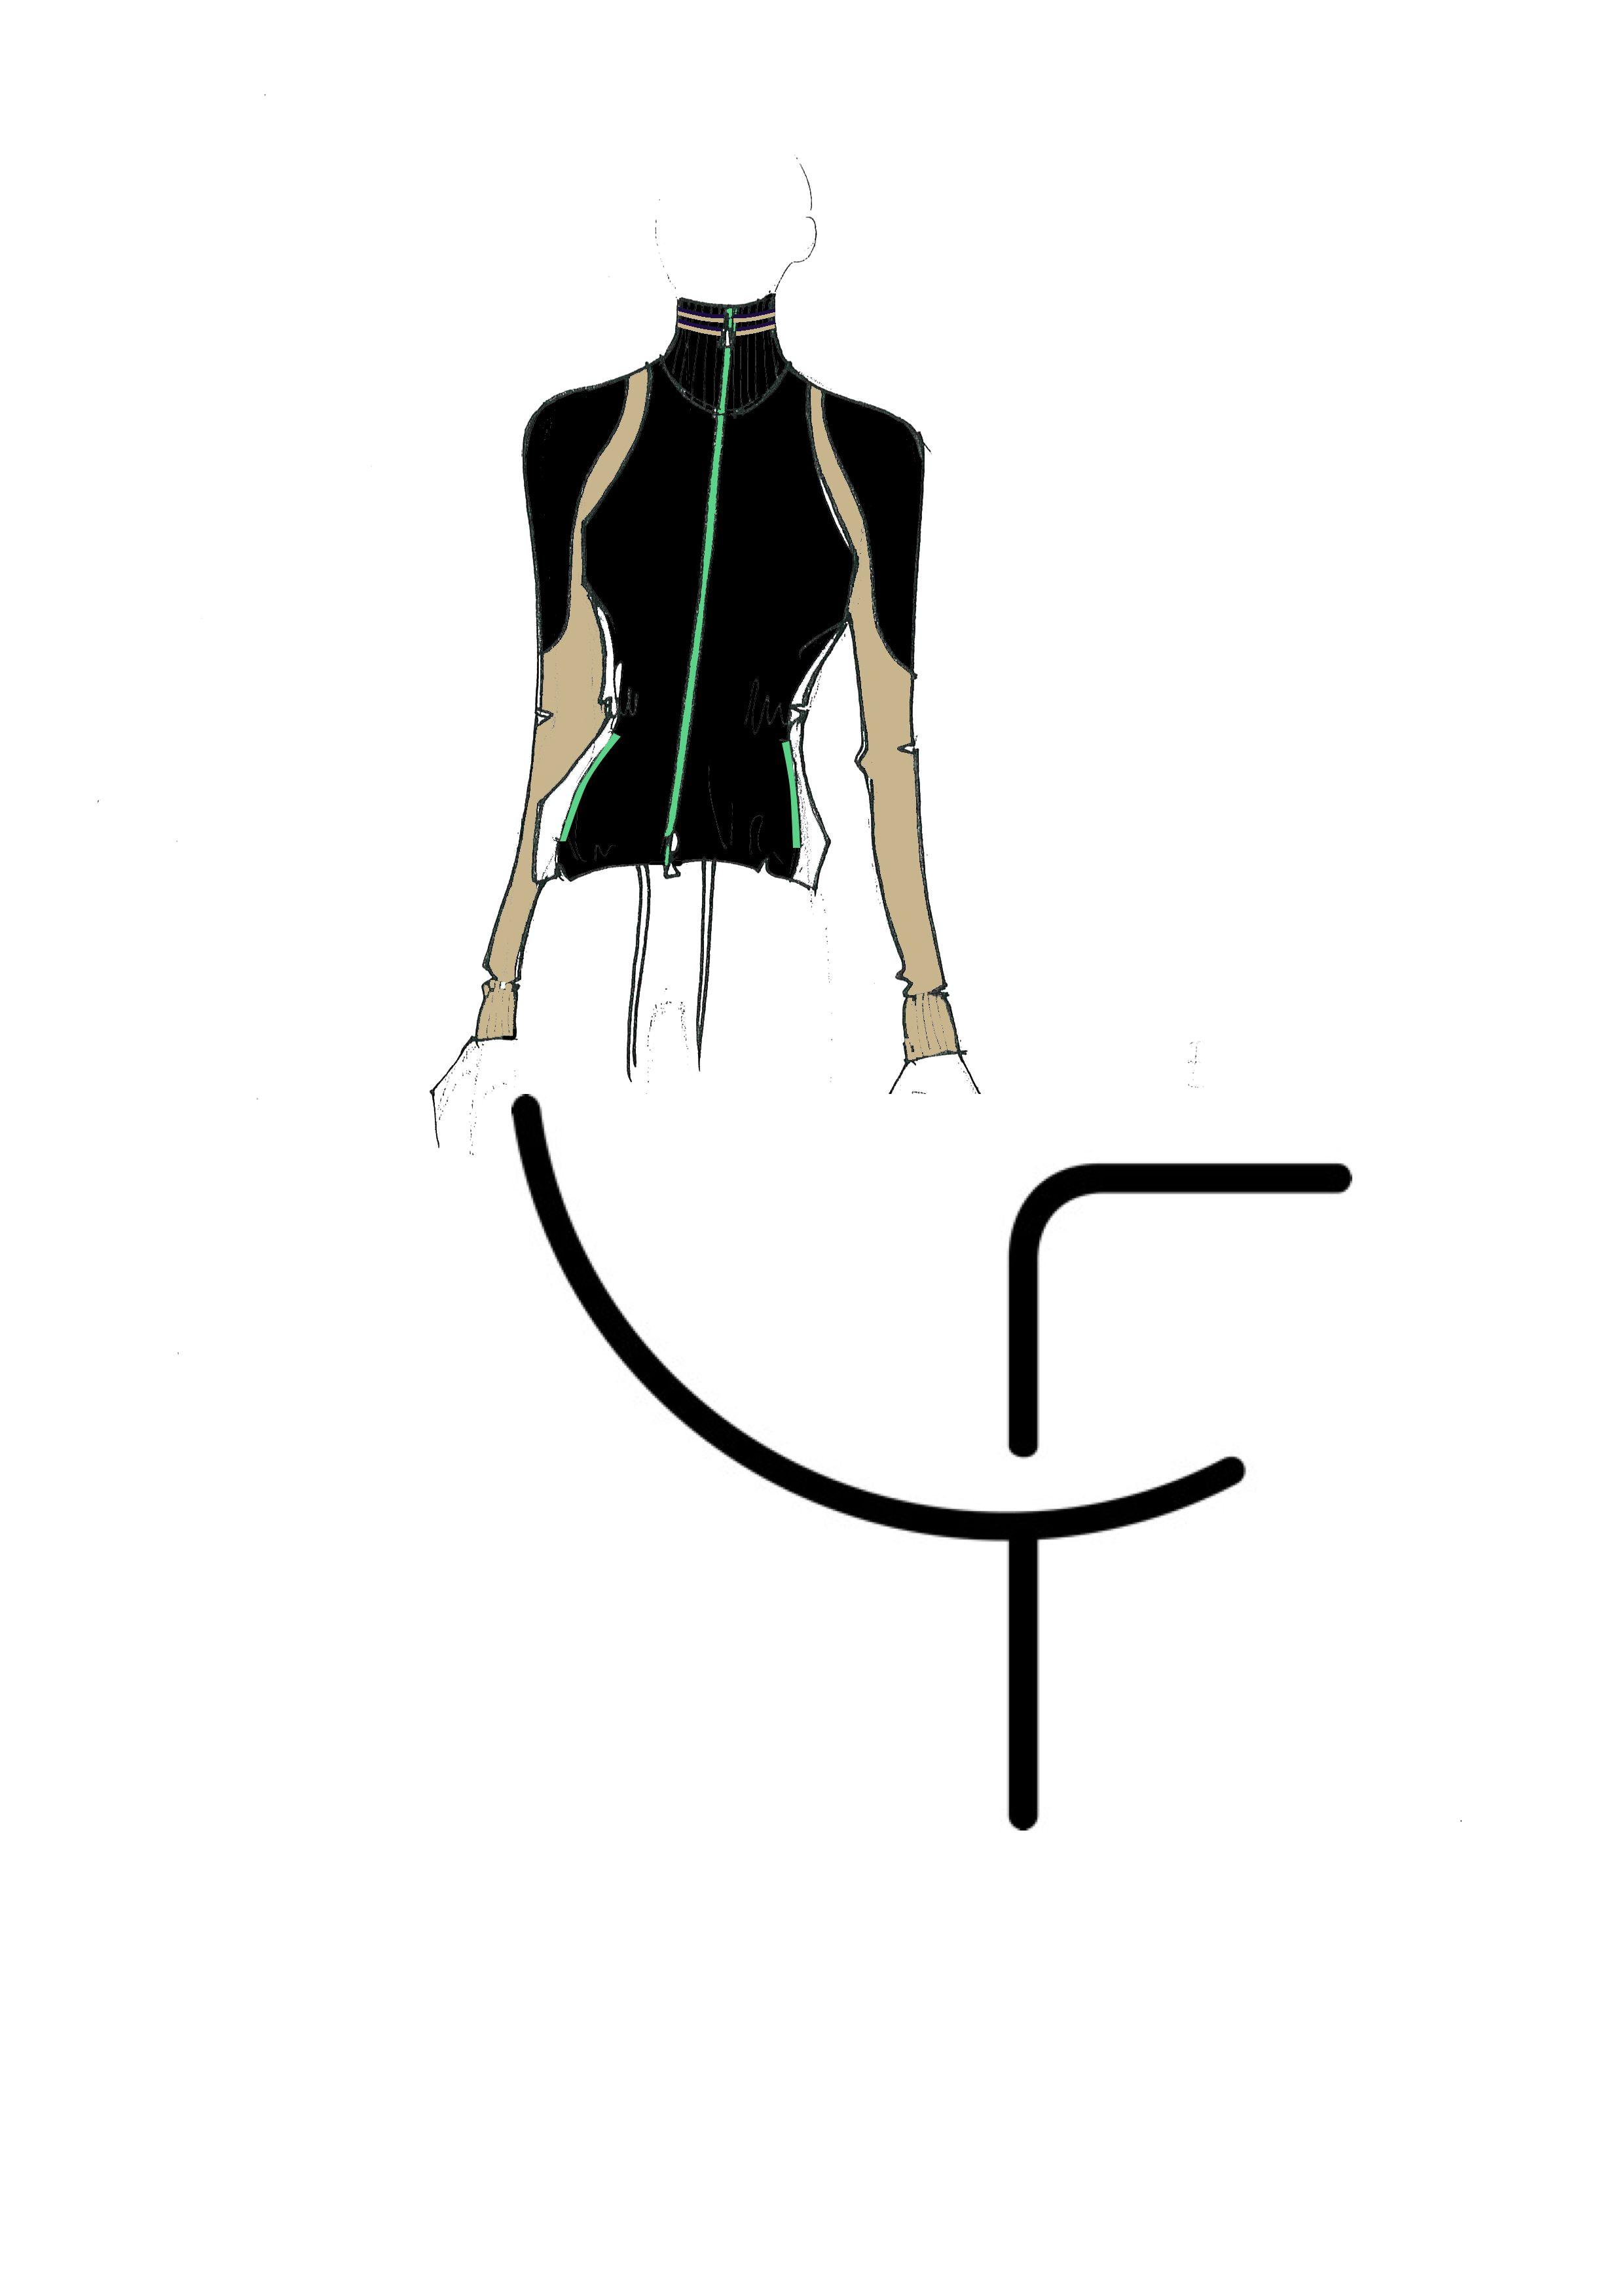 Dany Fay Golf Couture | Sketches Collection SS17 - Part I  #danyfay #sketches #fashiondesign #collectionss17 #ss17 #Gofhose #Golfmode #Golfjacke #Golfkleider #Golfbekleidung #dame #golfer #schweiz #Switzerland #Zurich #Germany #madeinItaly #zurichsee #golfetiquette #golfstyle #jaanteshowroom #golfcouture #designerclothing #modafeminina #golf #jacket #garments